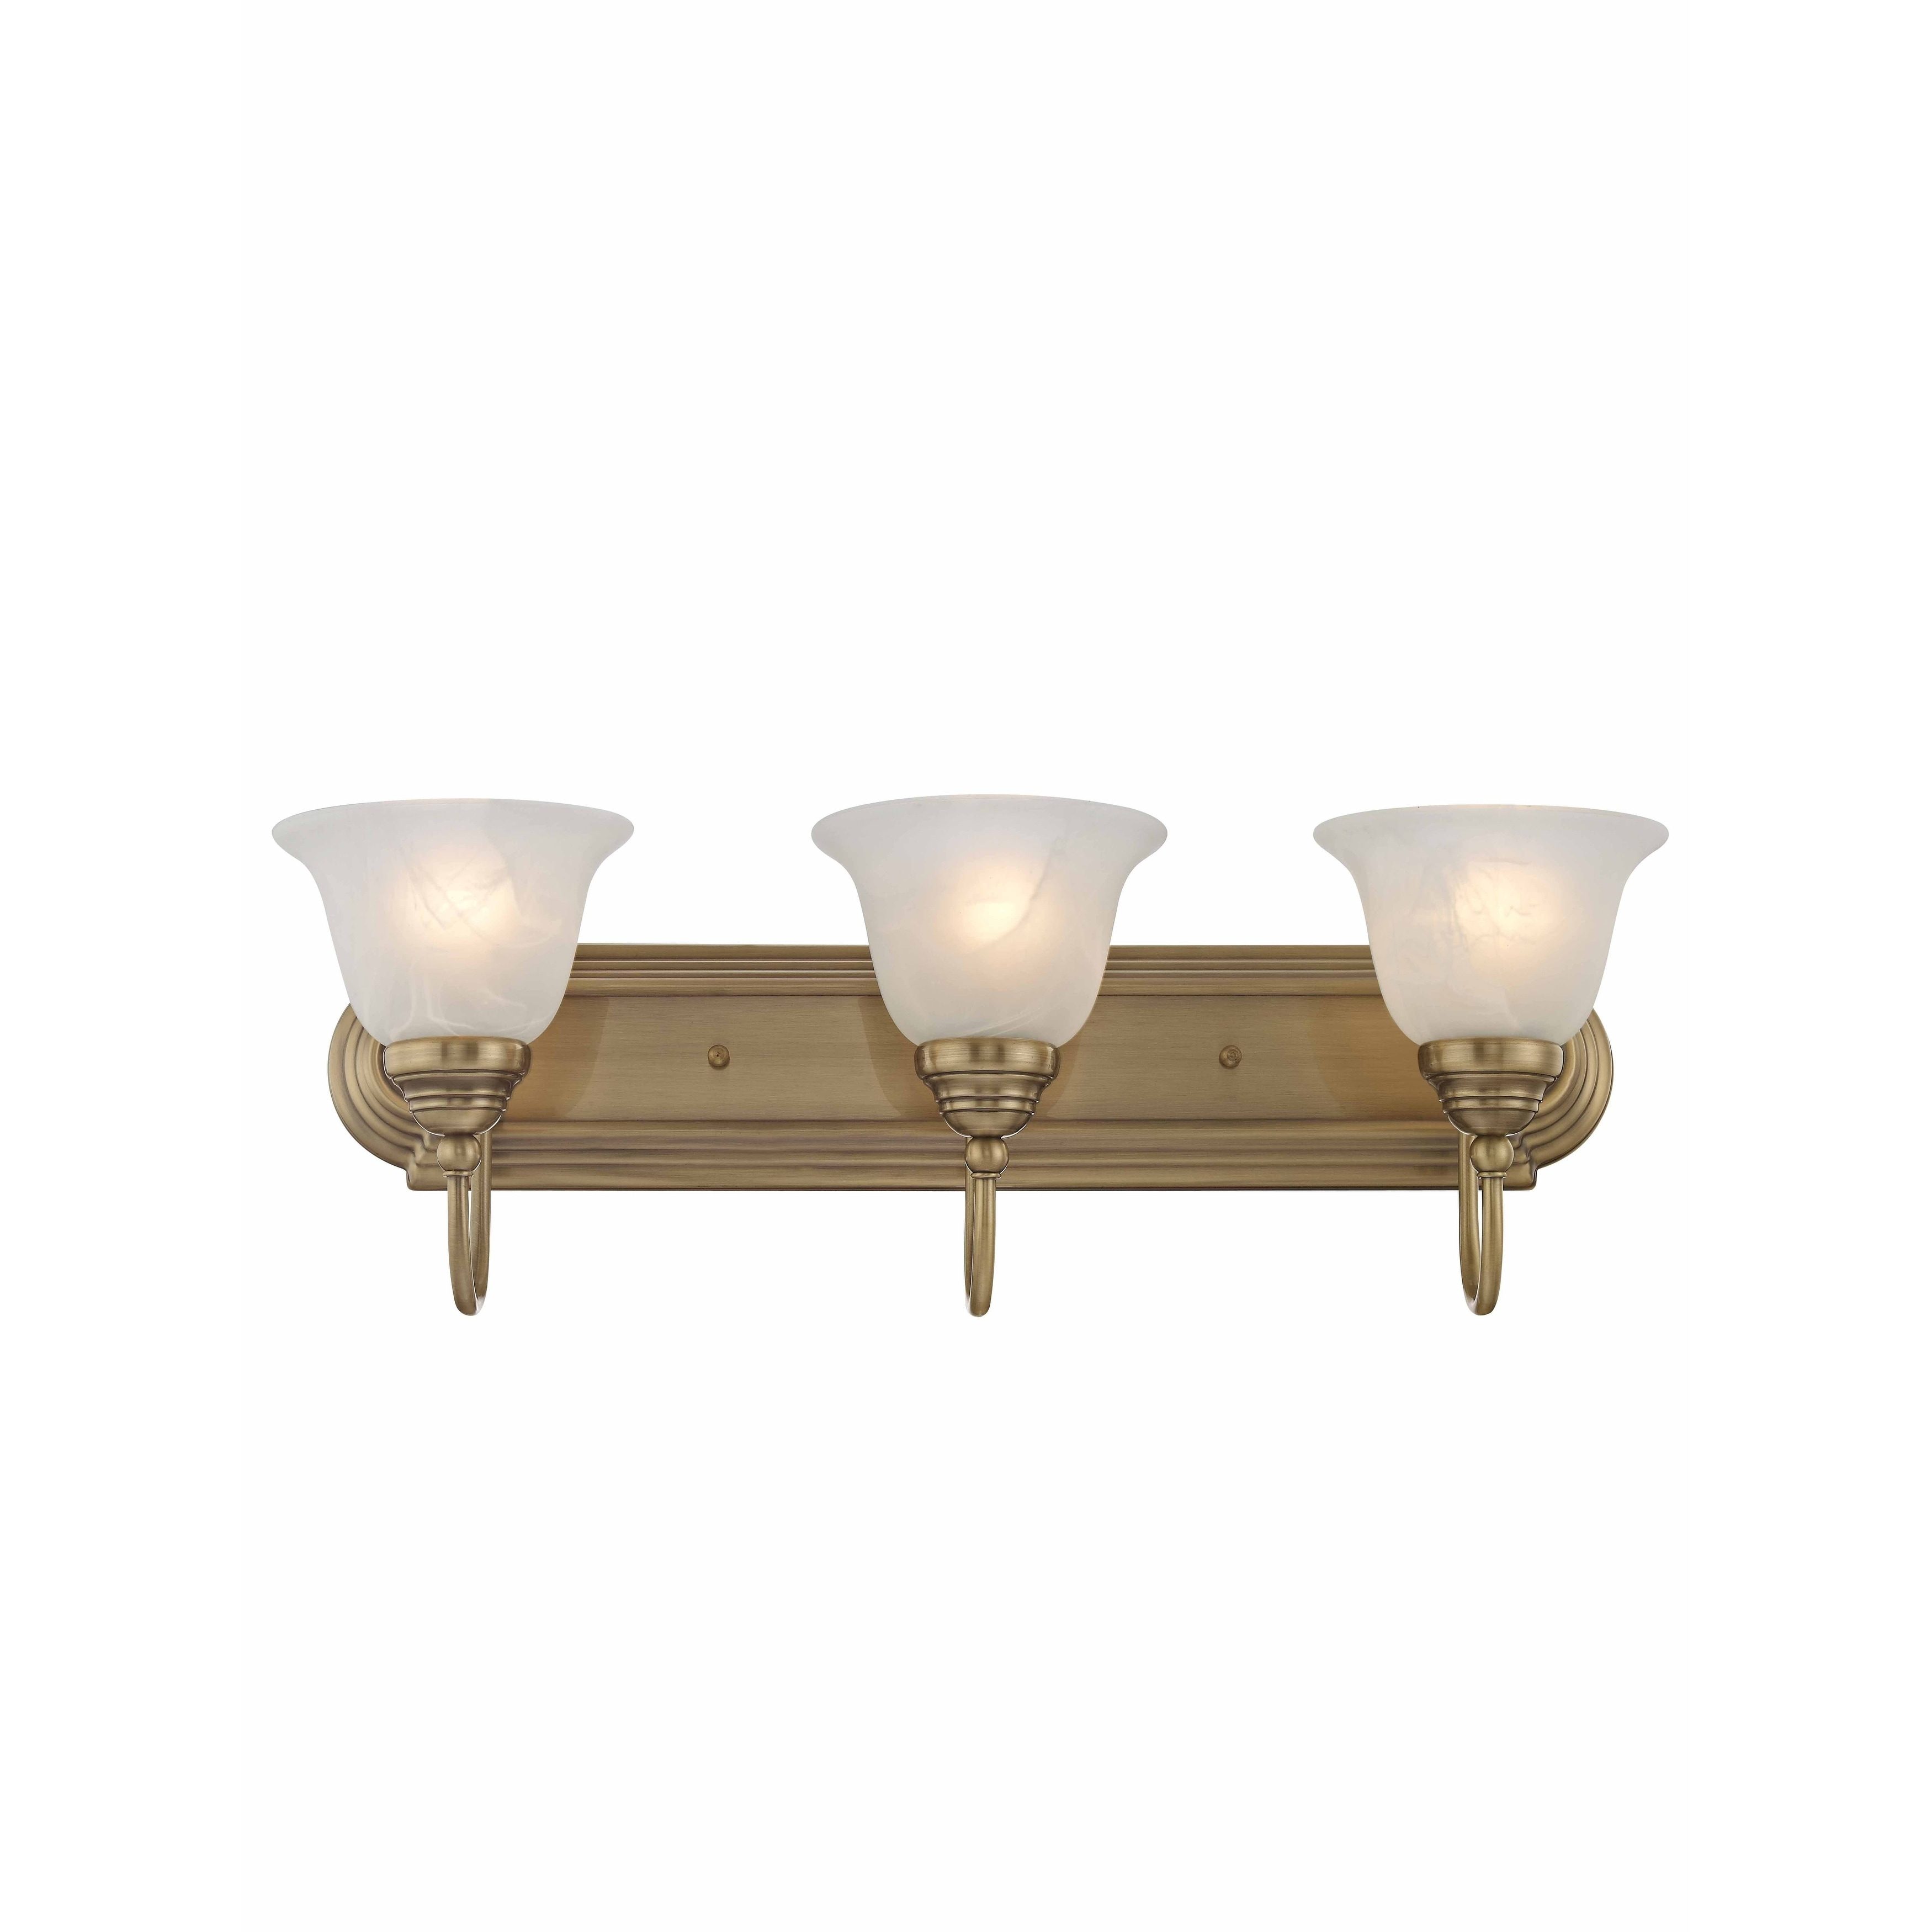 Livex Lighting Belmont Gold Brass 3 Light Bathroom Fixture